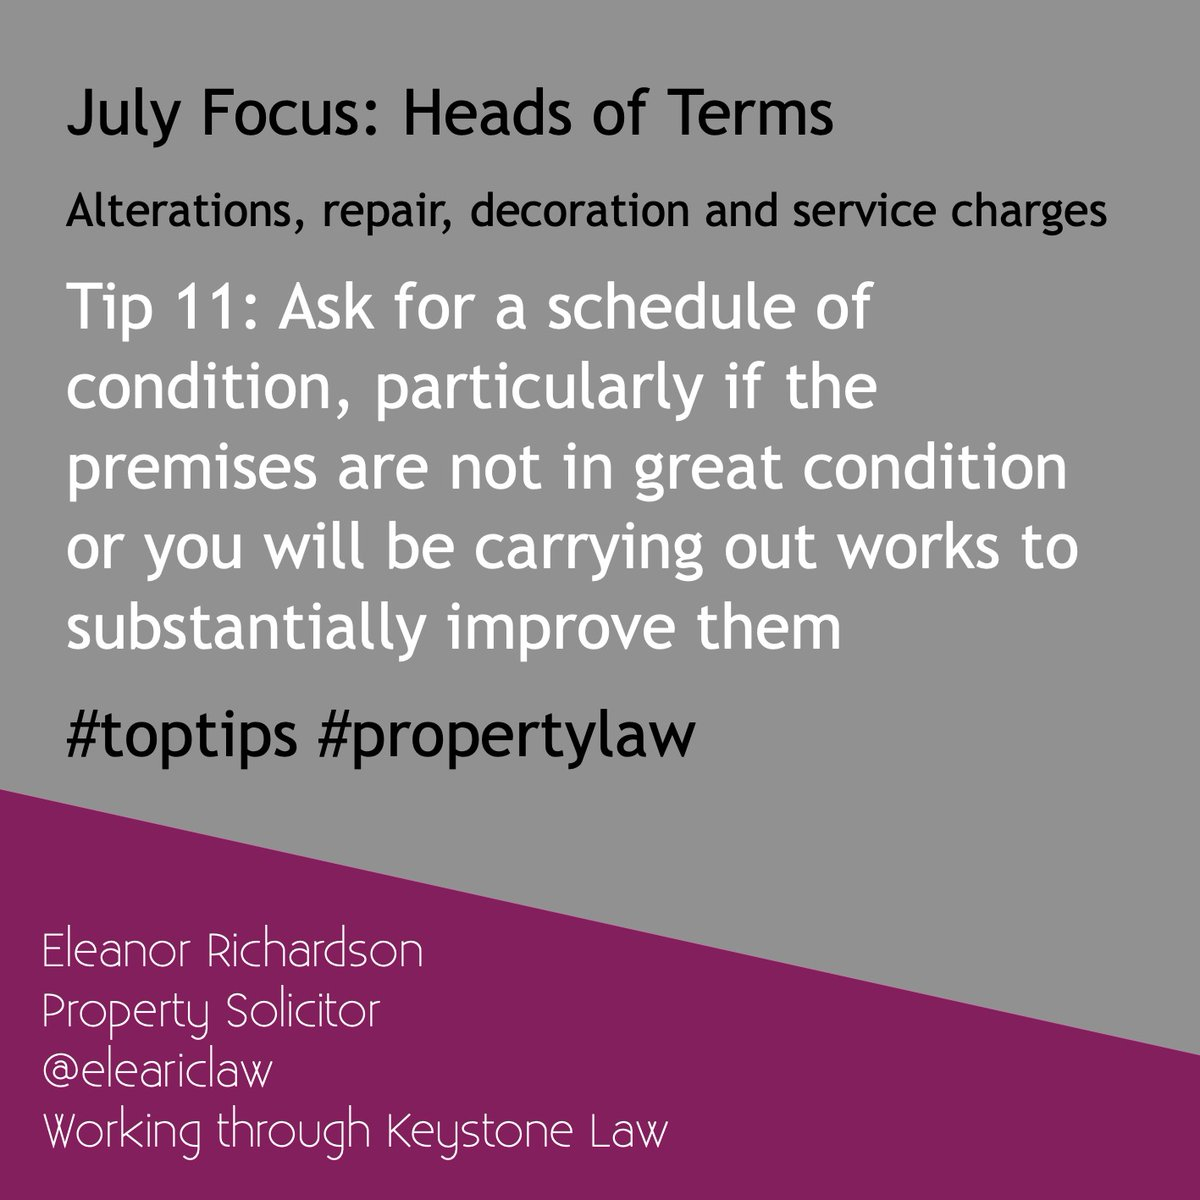 Tip 11: Ask for a schedule of condition, particularly if the premises are not in great condition or you will be carrying out works to substantially improve them #HOT #toptips #alterationsandrepair #headsofterms #ukpropertylaw #propertylaw https://t.co/S5GmynqXb2